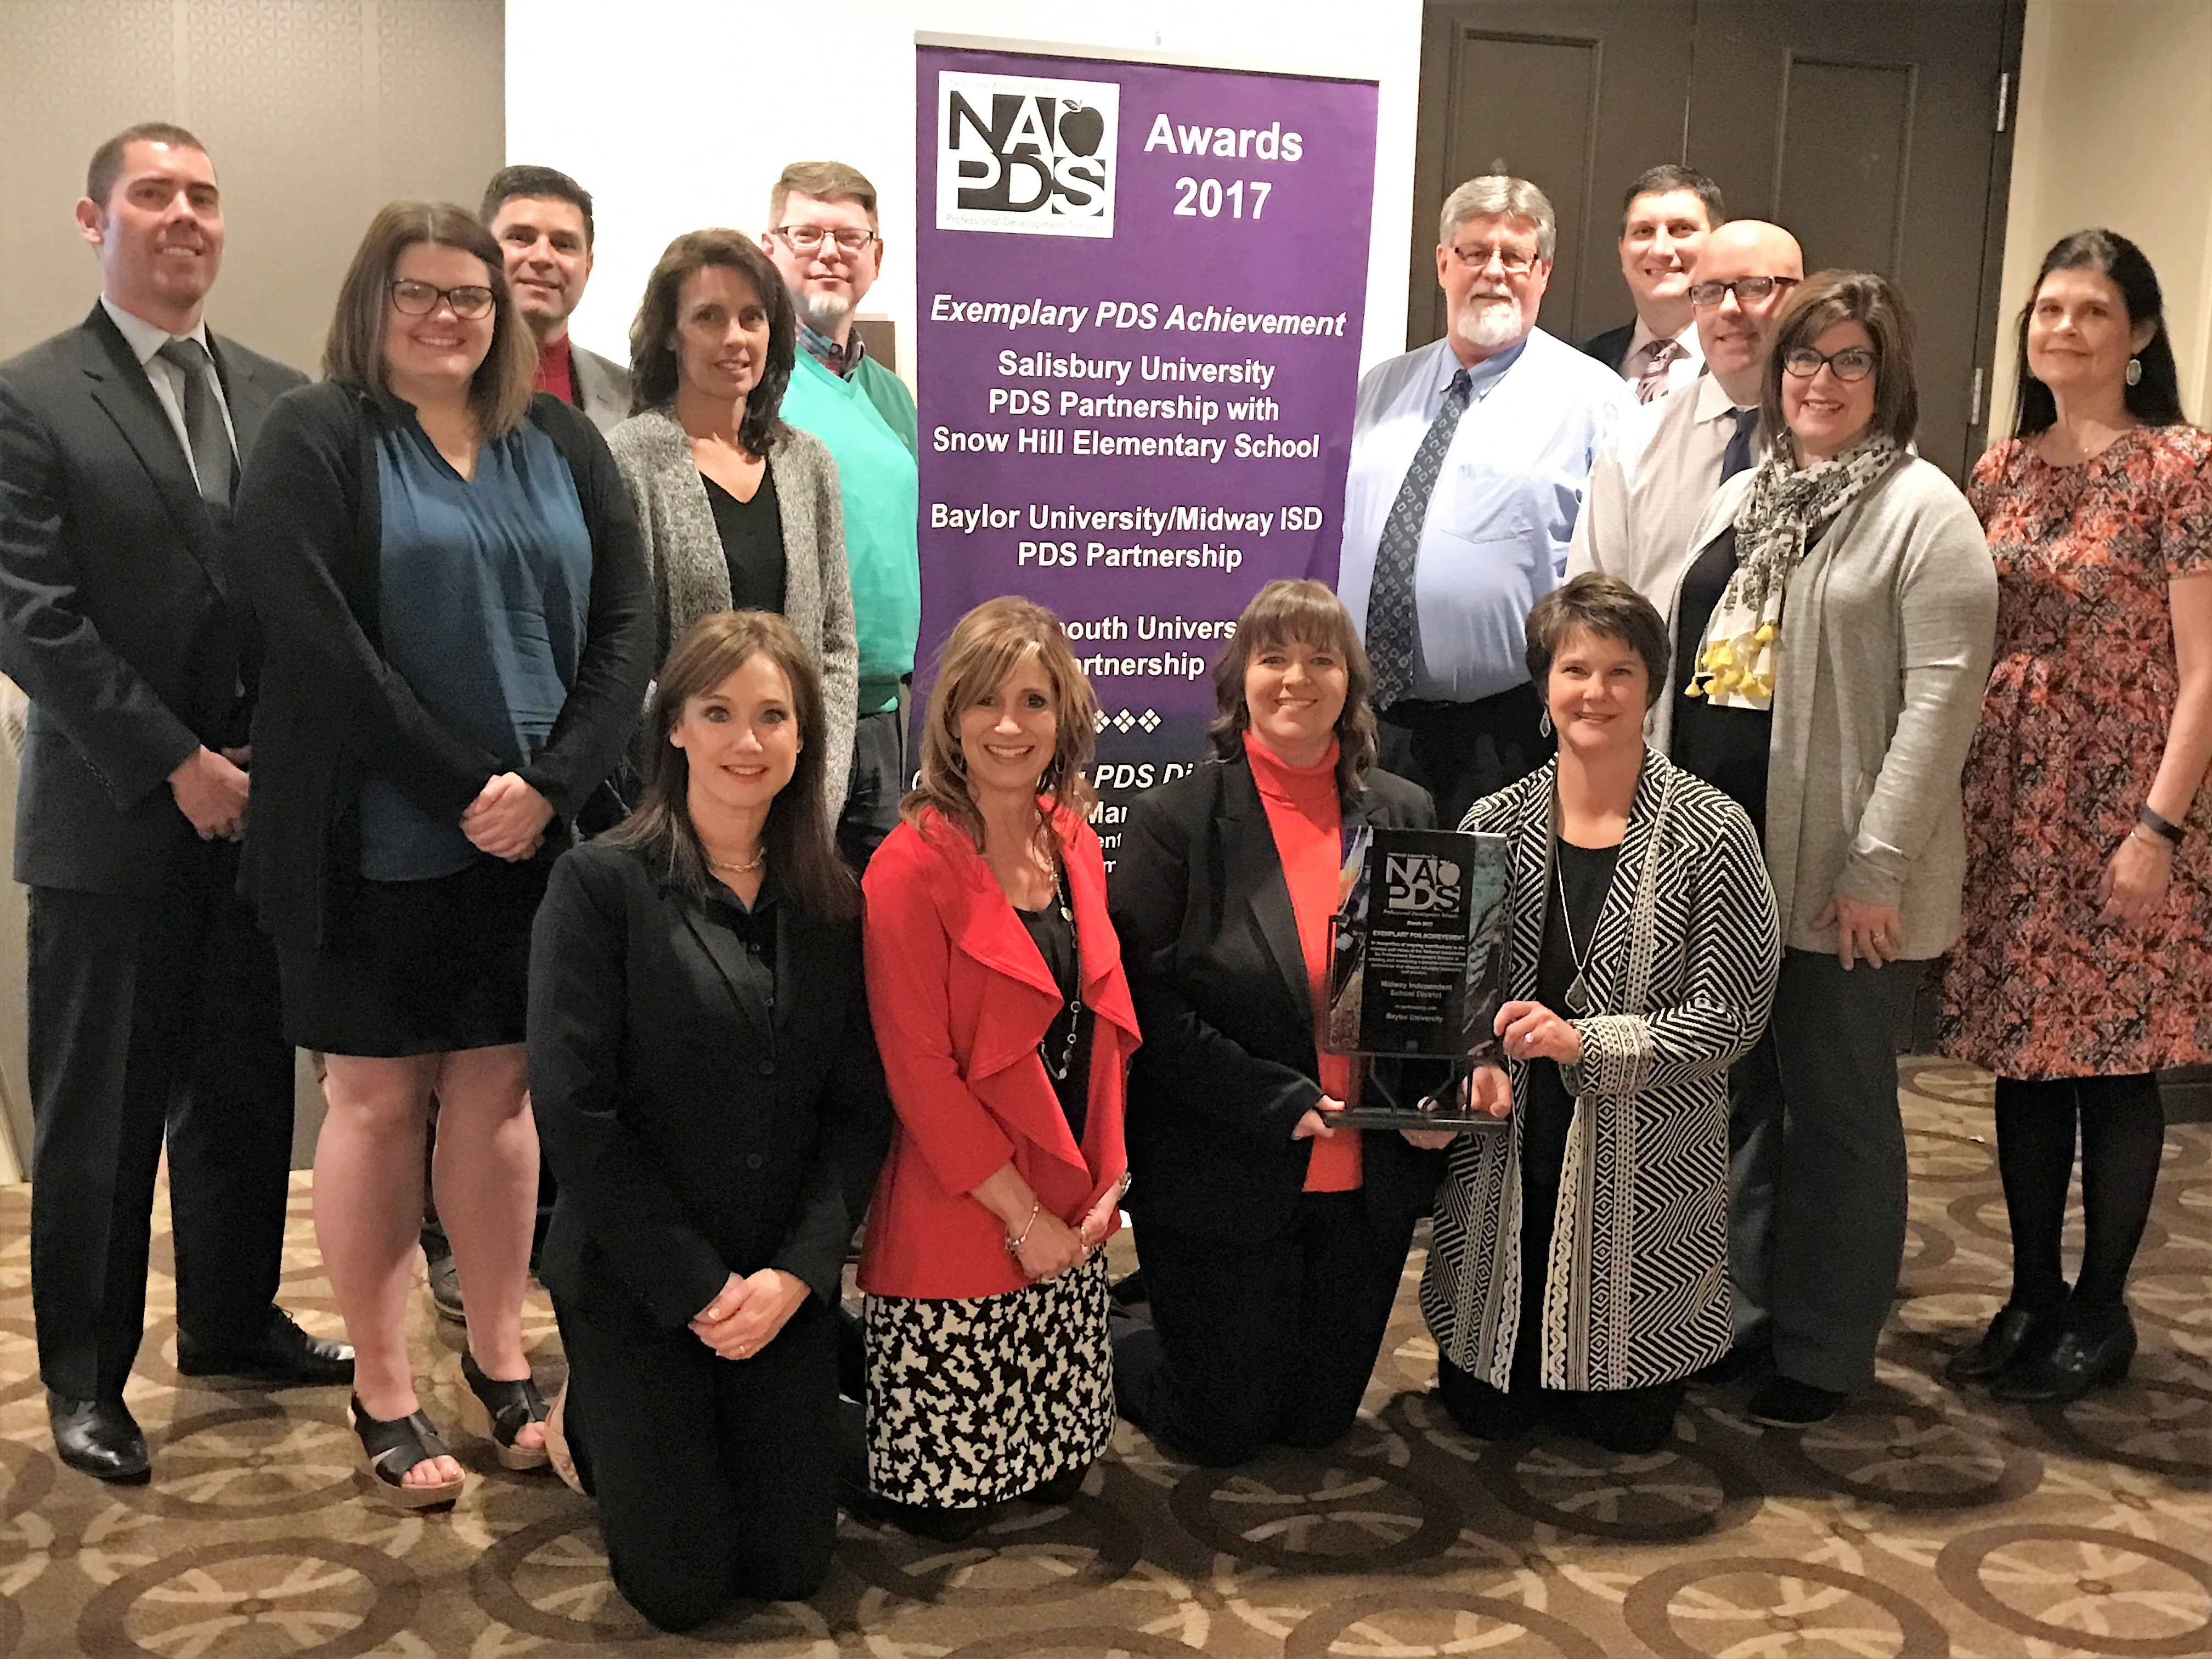 Baylor School of Education-Midway ISD Partnership Receives